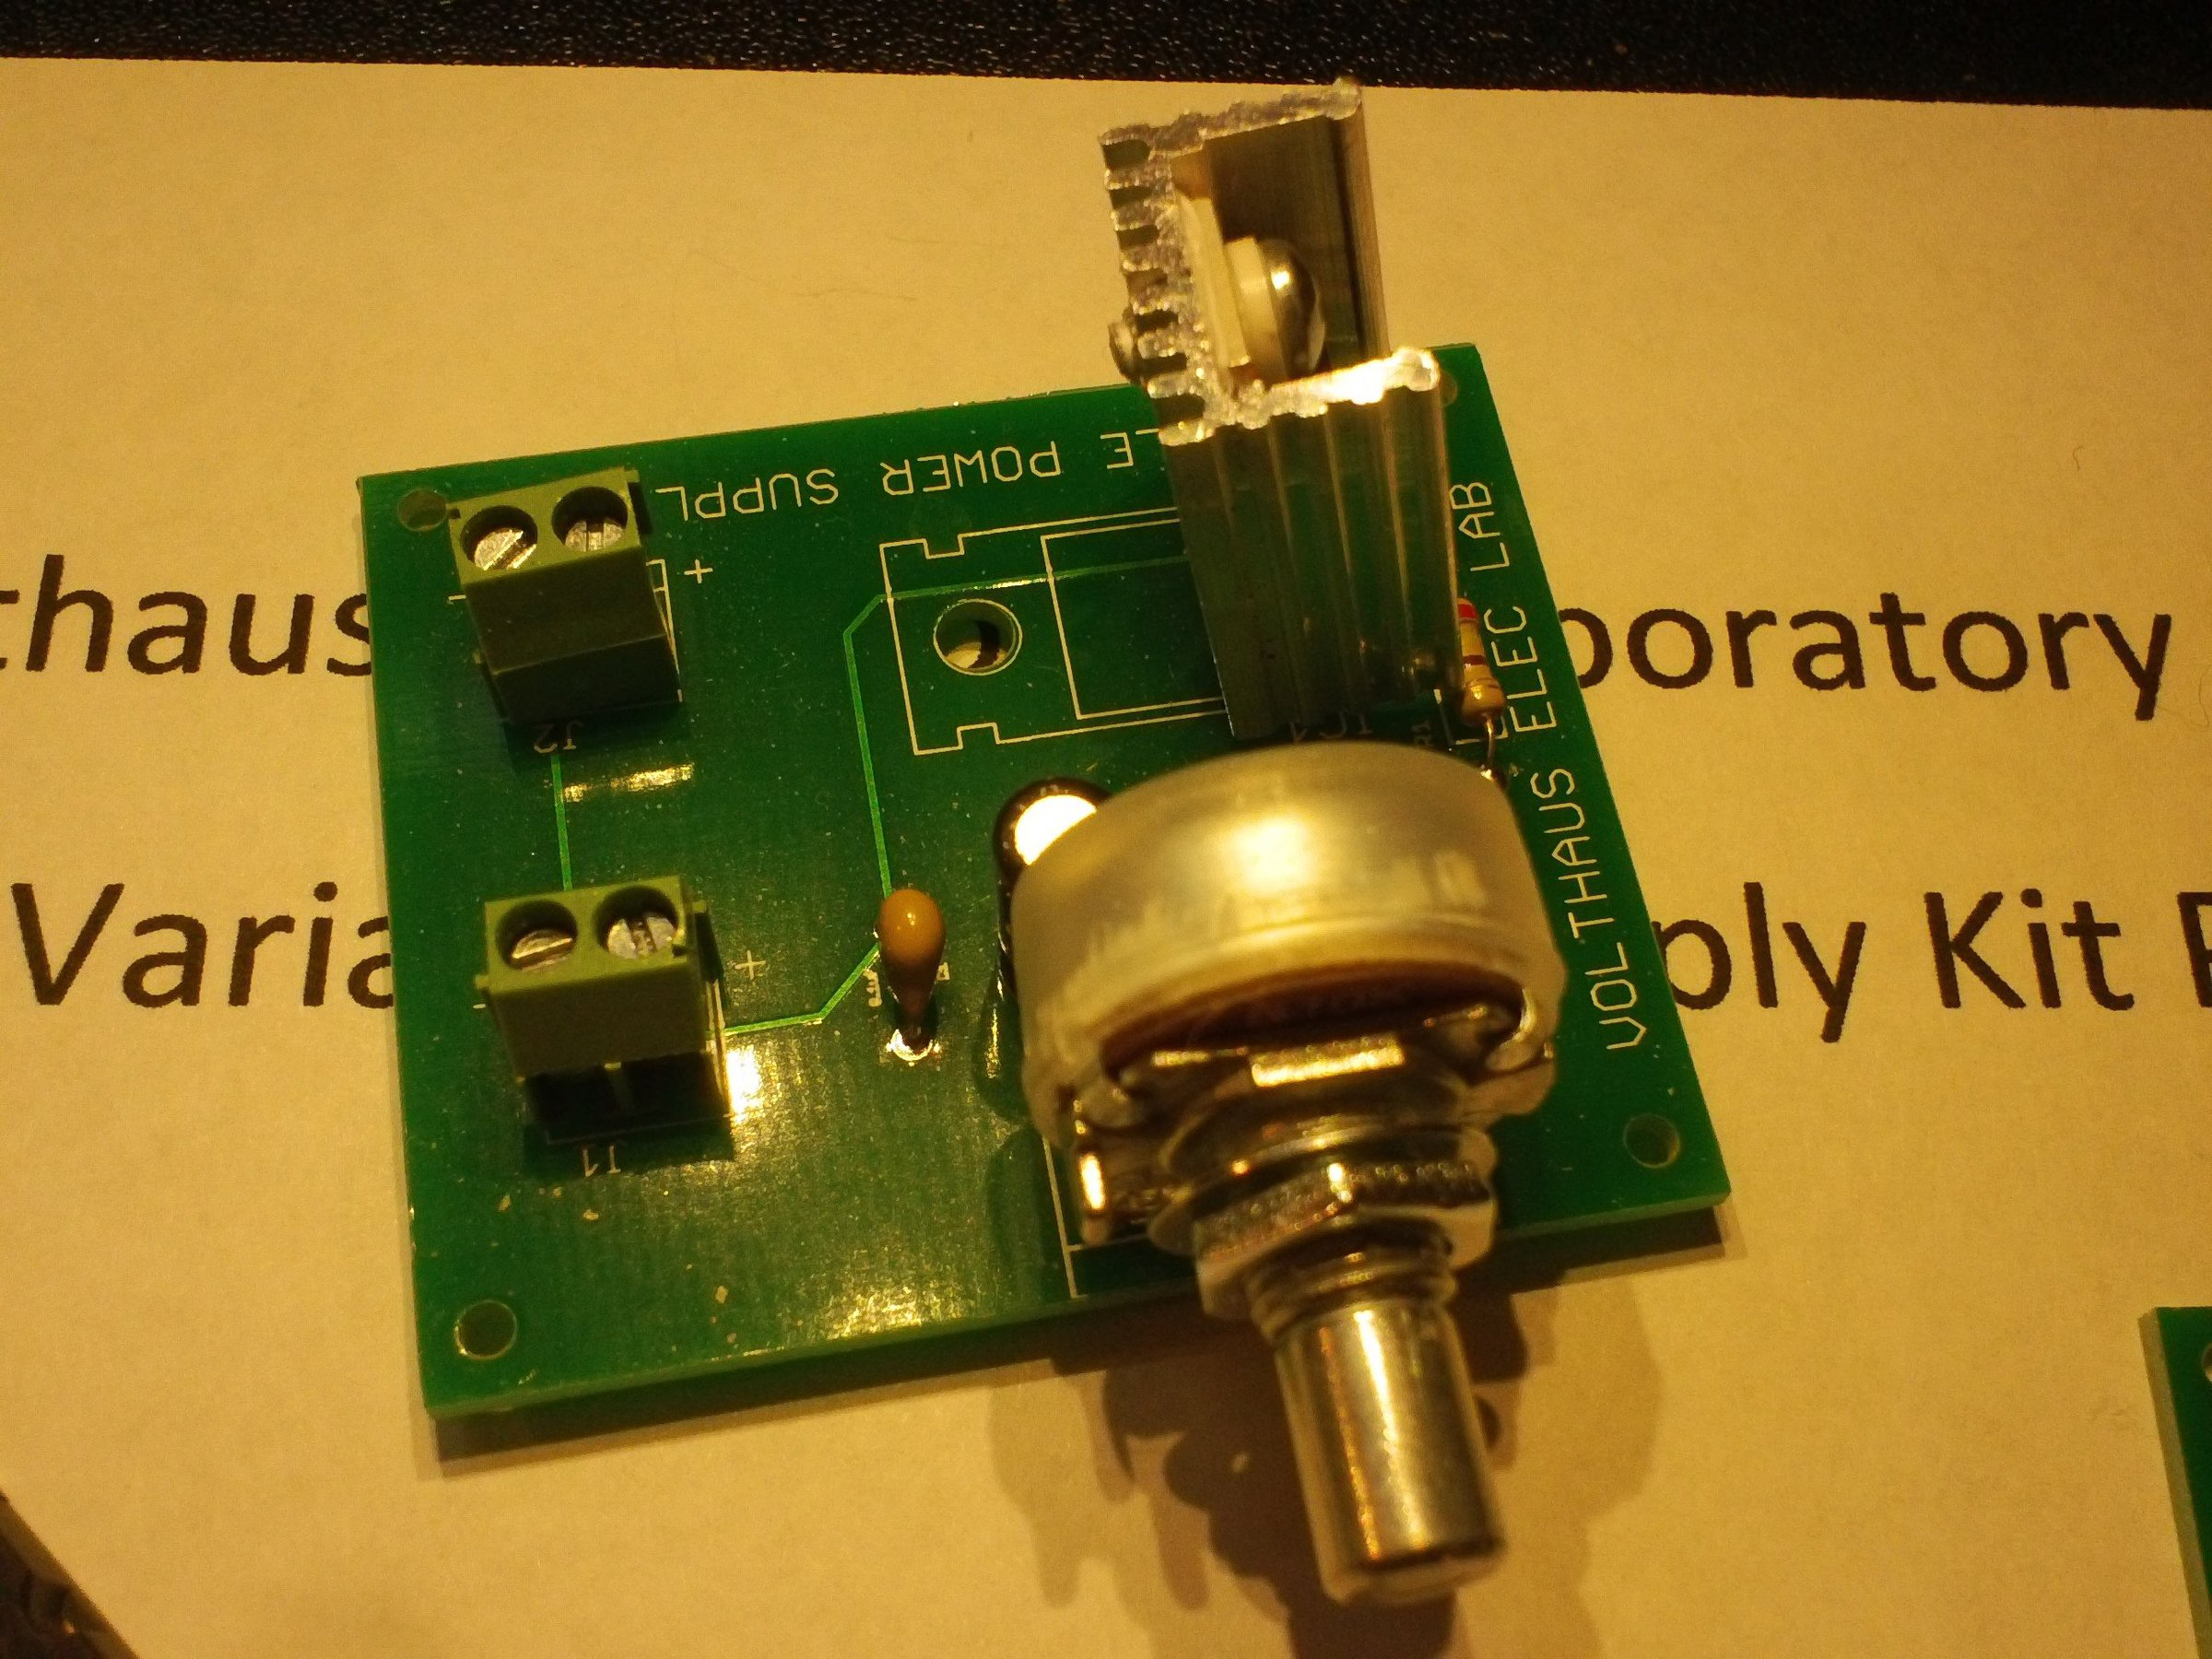 Lm317t Variable Power Supply Kit From Volthaus Electronics Circuits Projects Electronic Kits Hobby More 1